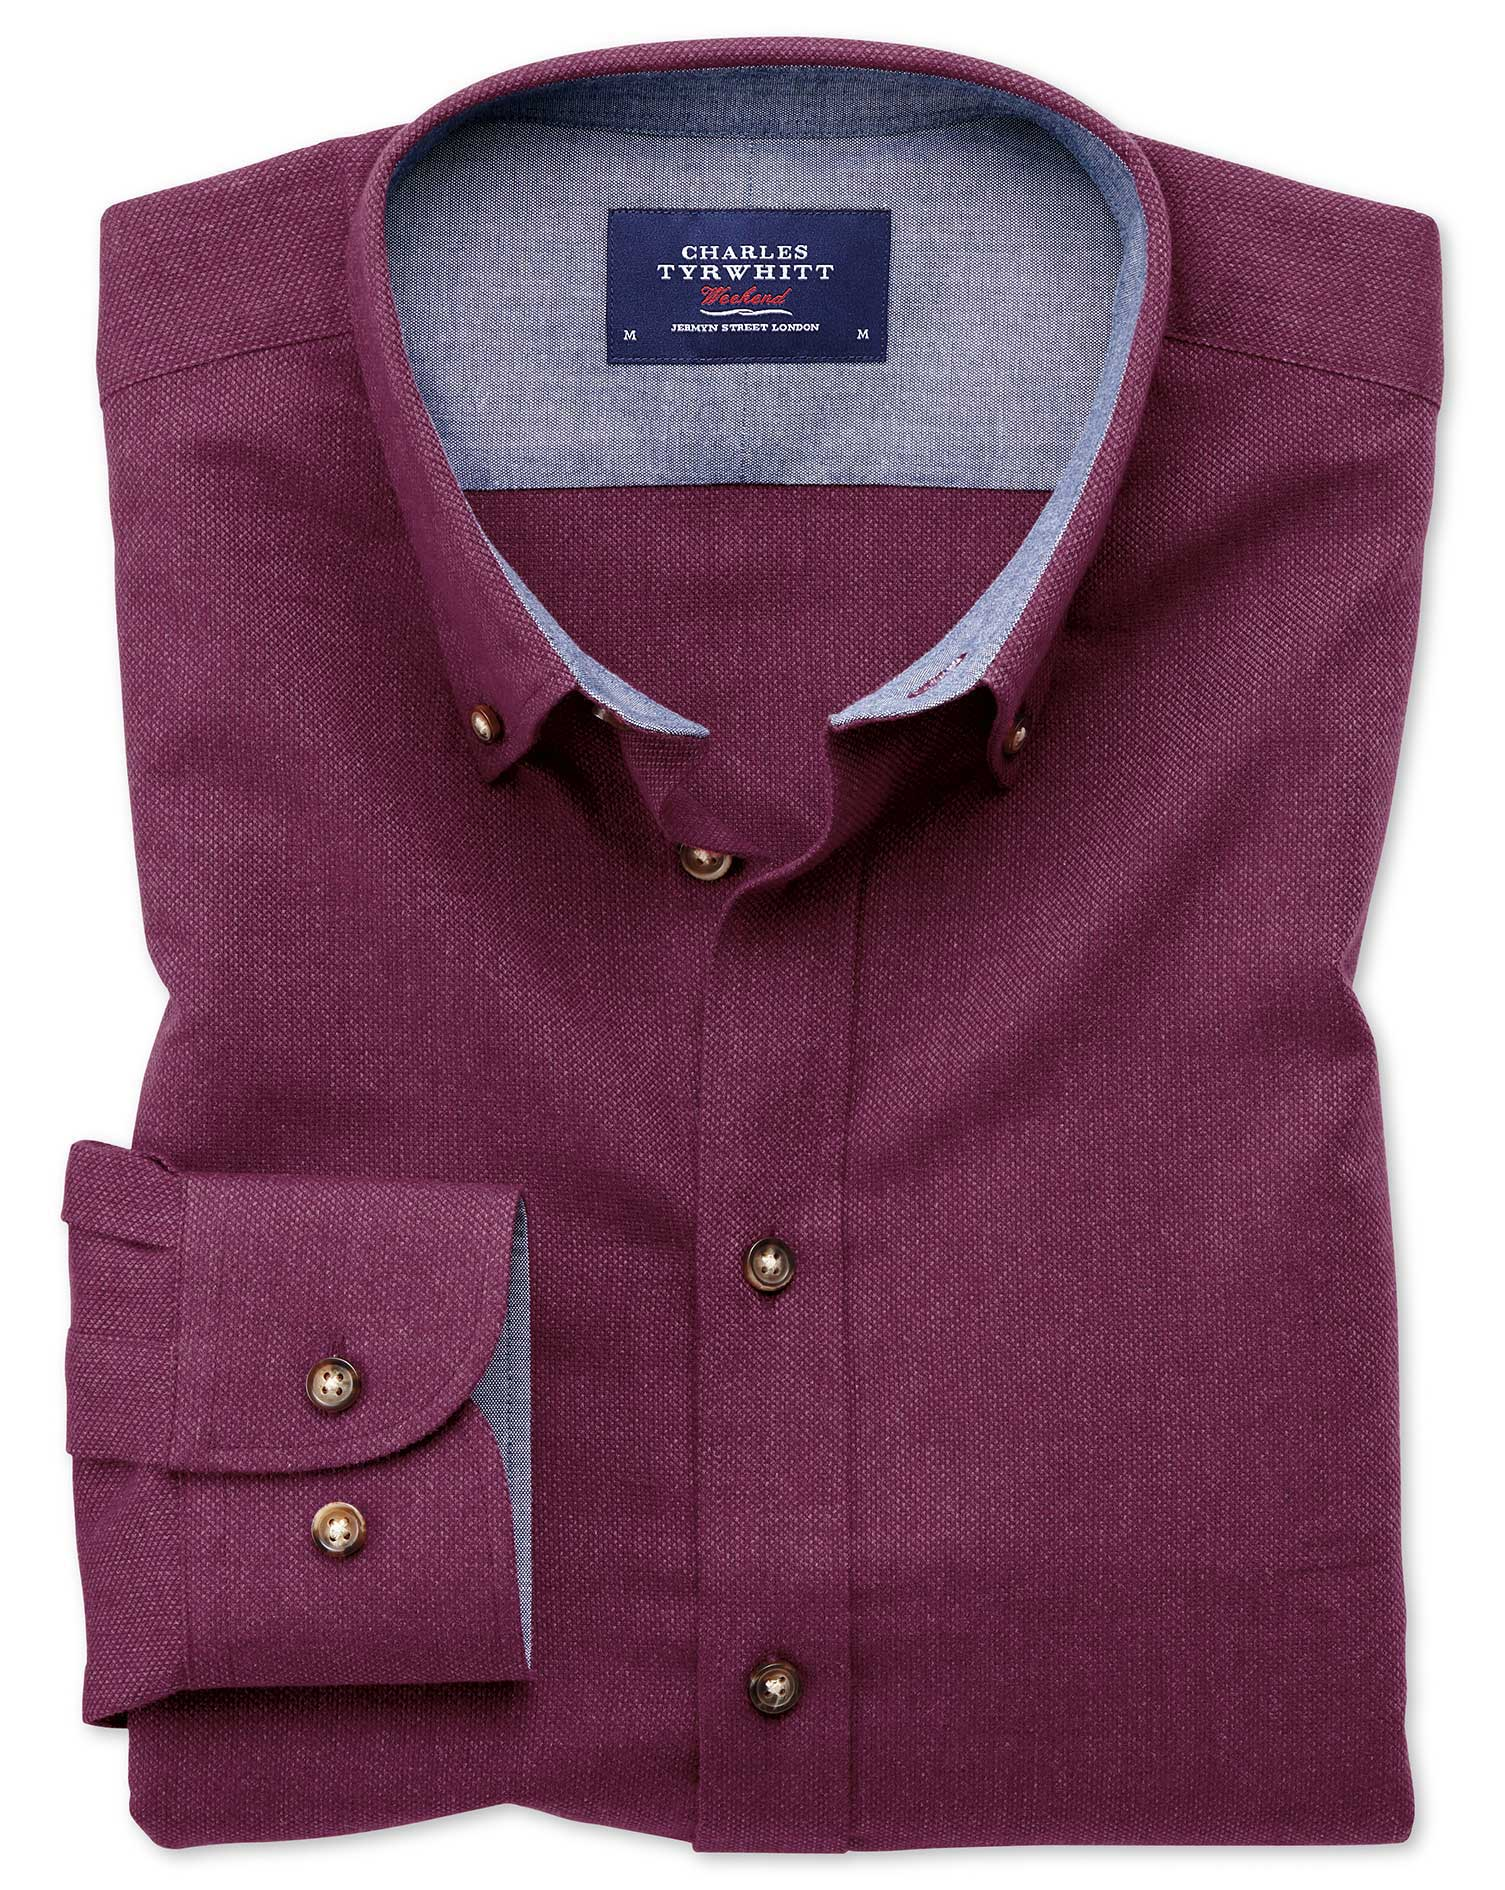 Slim Fit Button-Down Soft Cotton Plain Berry Shirt Single Cuff Size XS by Charles Tyrwhitt